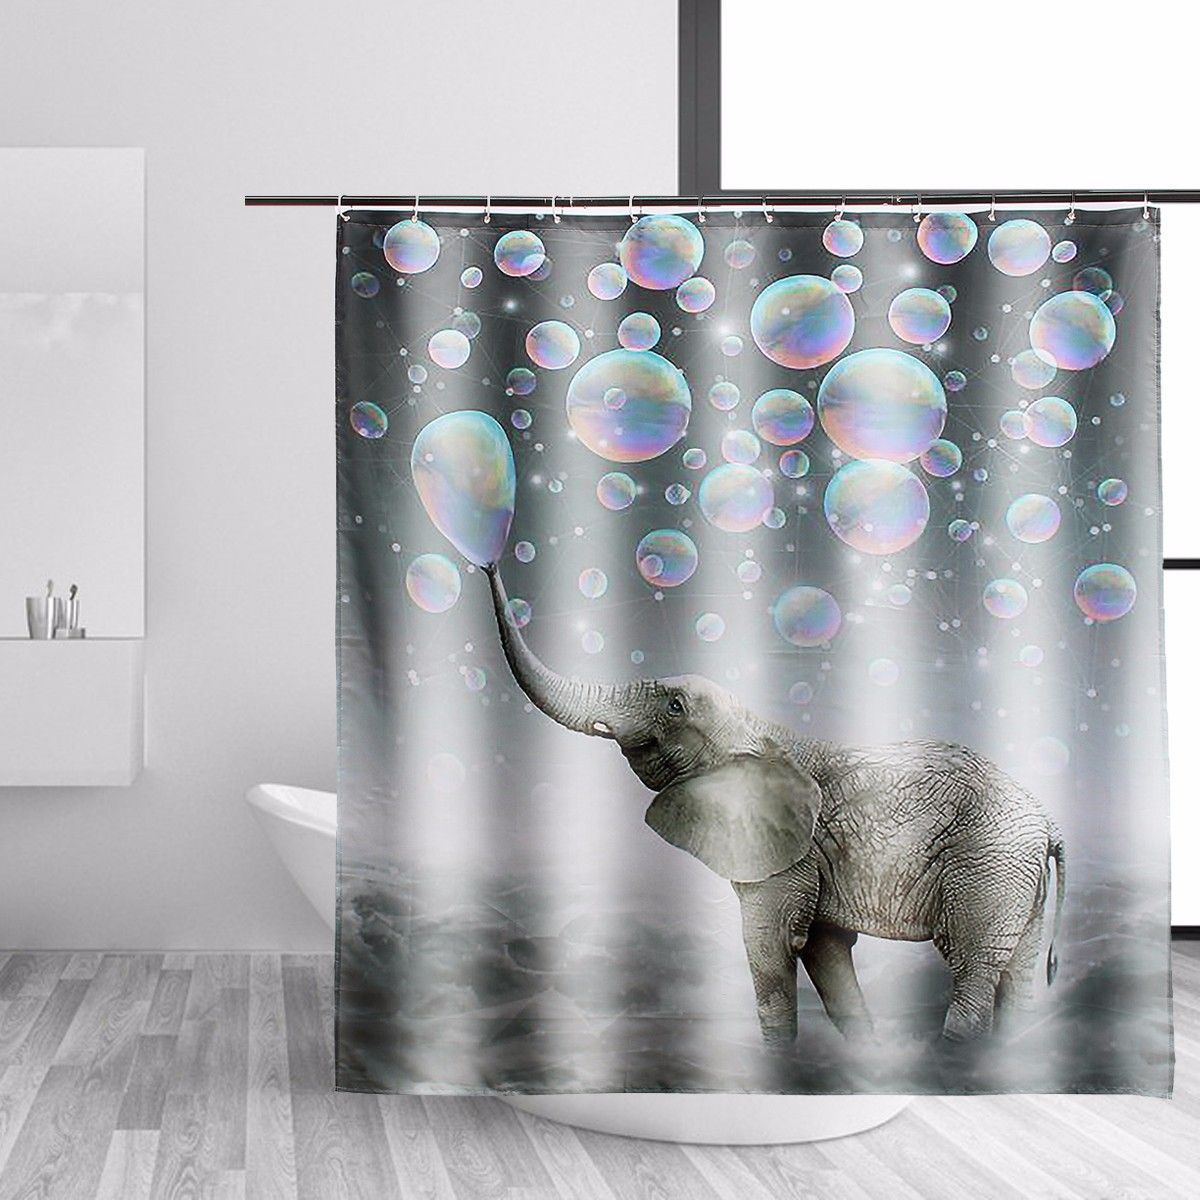 Elephant Fabric Waterproof Bathroom Shower Curtain Panel Sheer